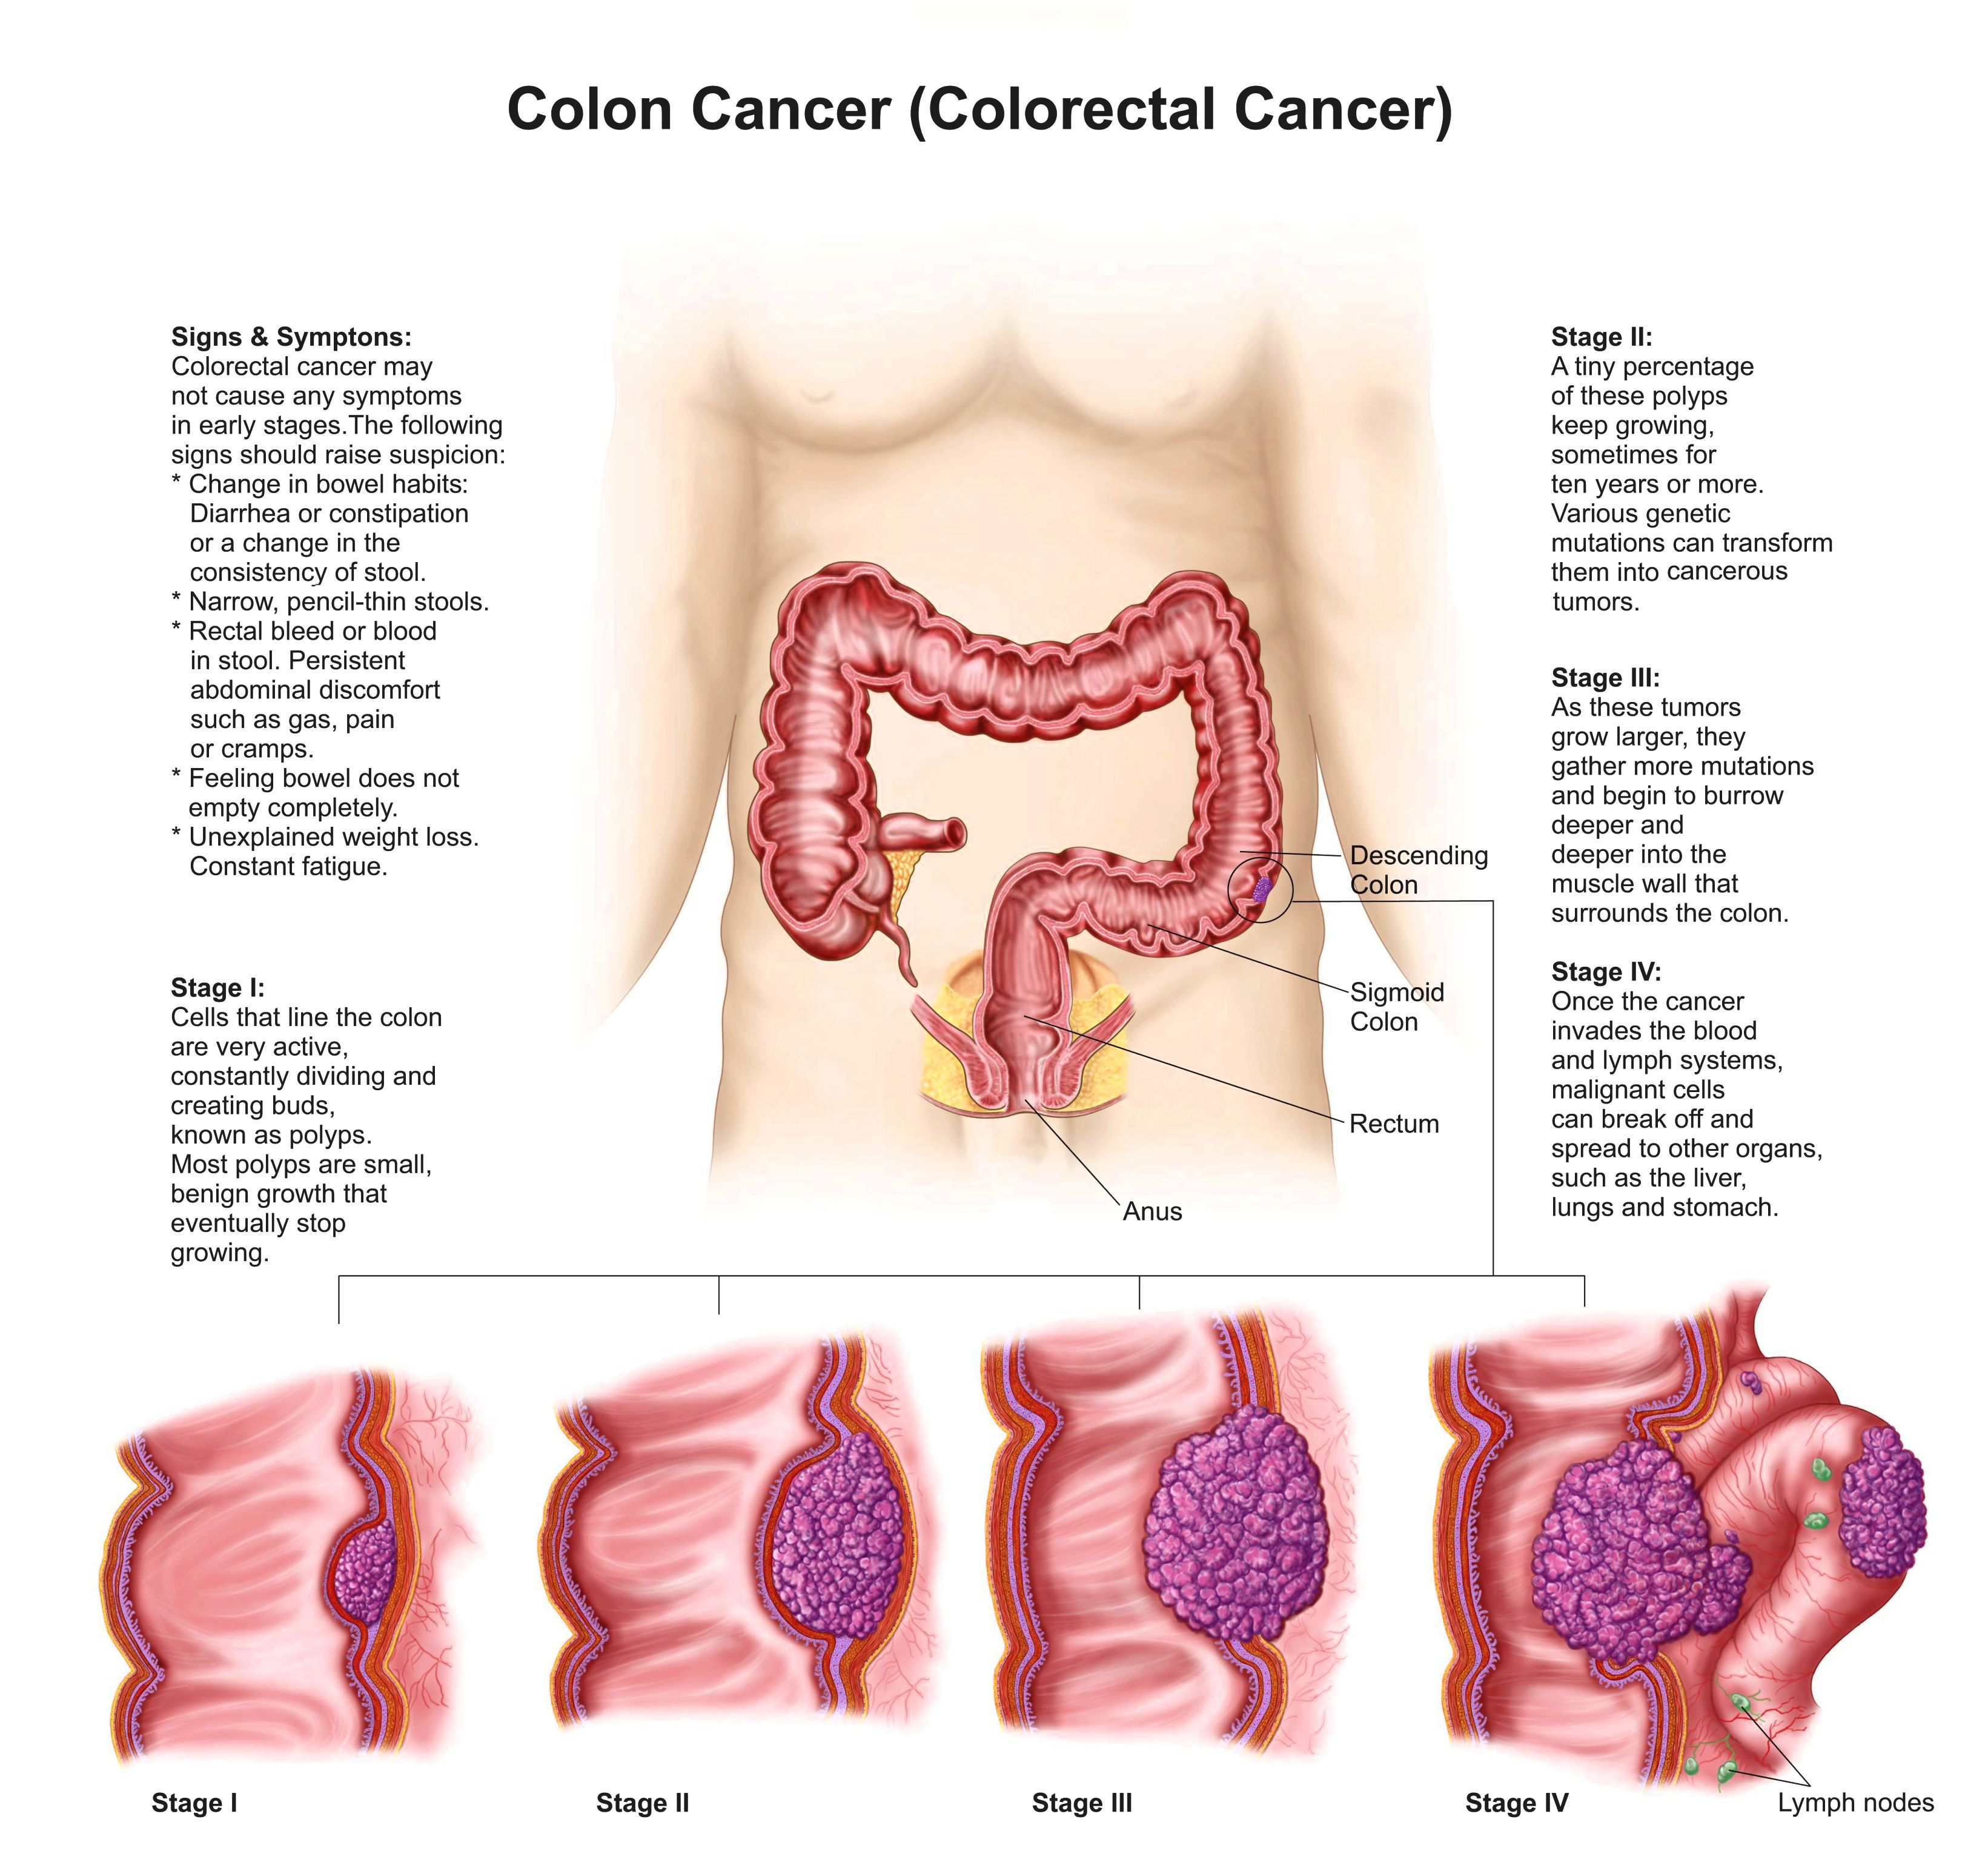 Management of cancer of the colon, by stage Recurrent cancers can frequently be